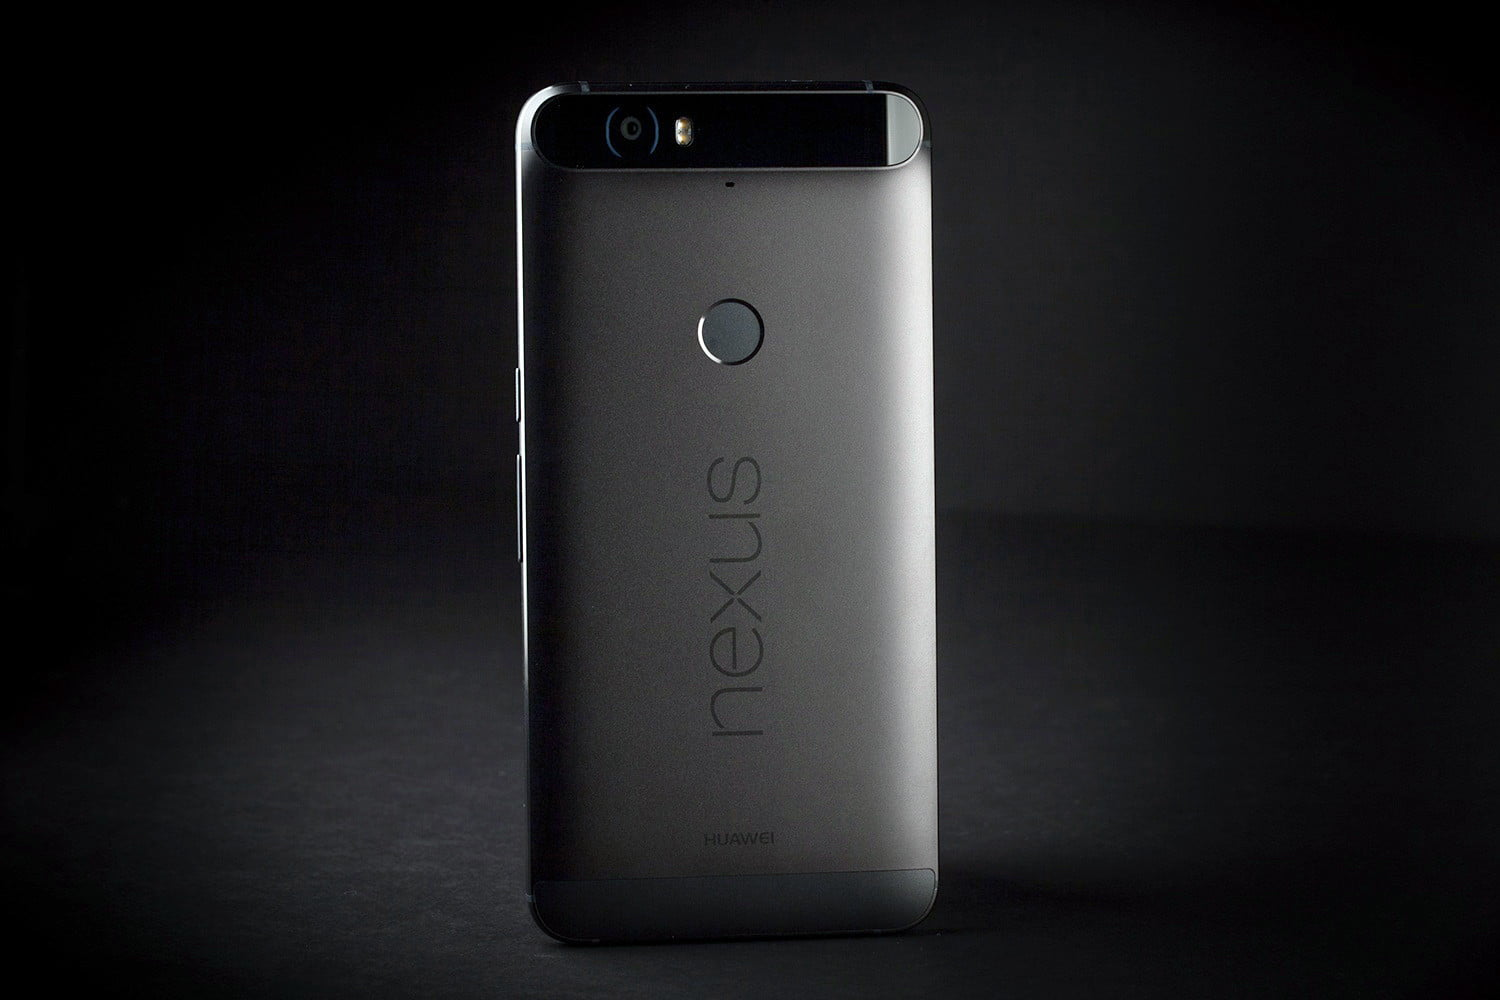 For the first time, Google picked a Chinese manufacturer to develop a Nexus  smartphone. The Nexus 6P is widely-regarded as one of the best Nexus  smartphones ...